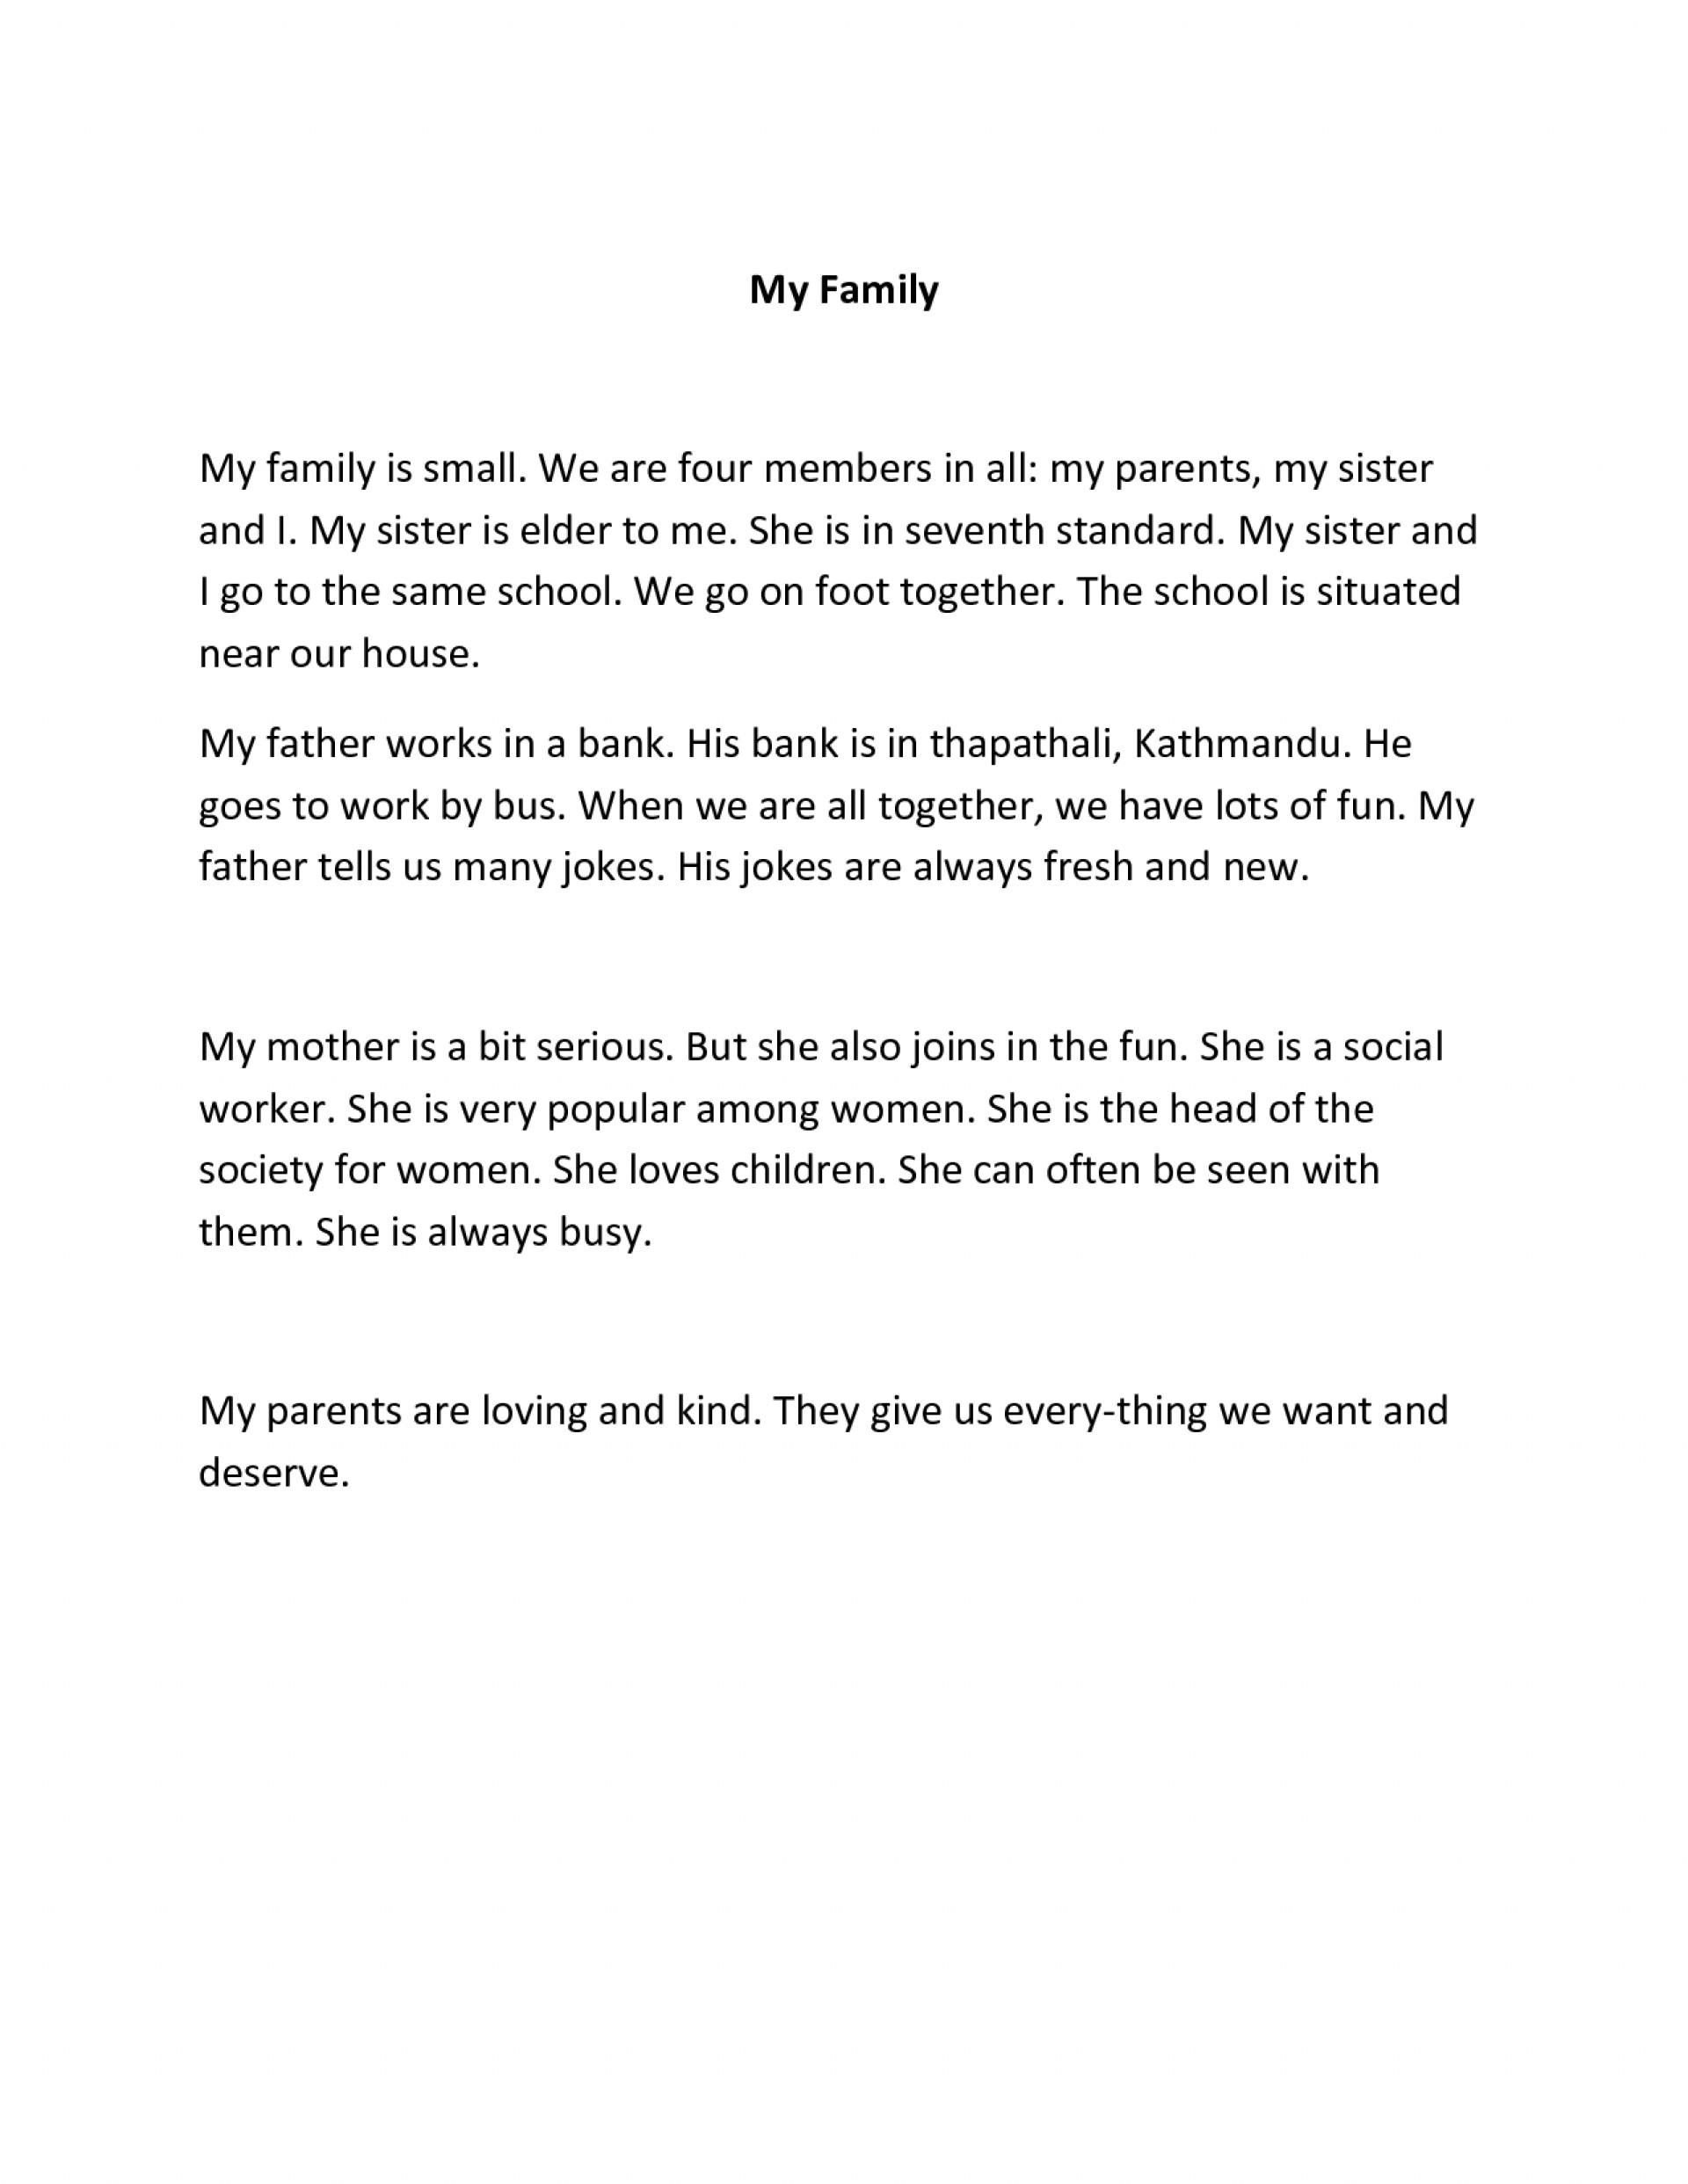 003 Short Essay On My Family In English L Example How To Write Surprising A Response Answer Question Apa Format 1920